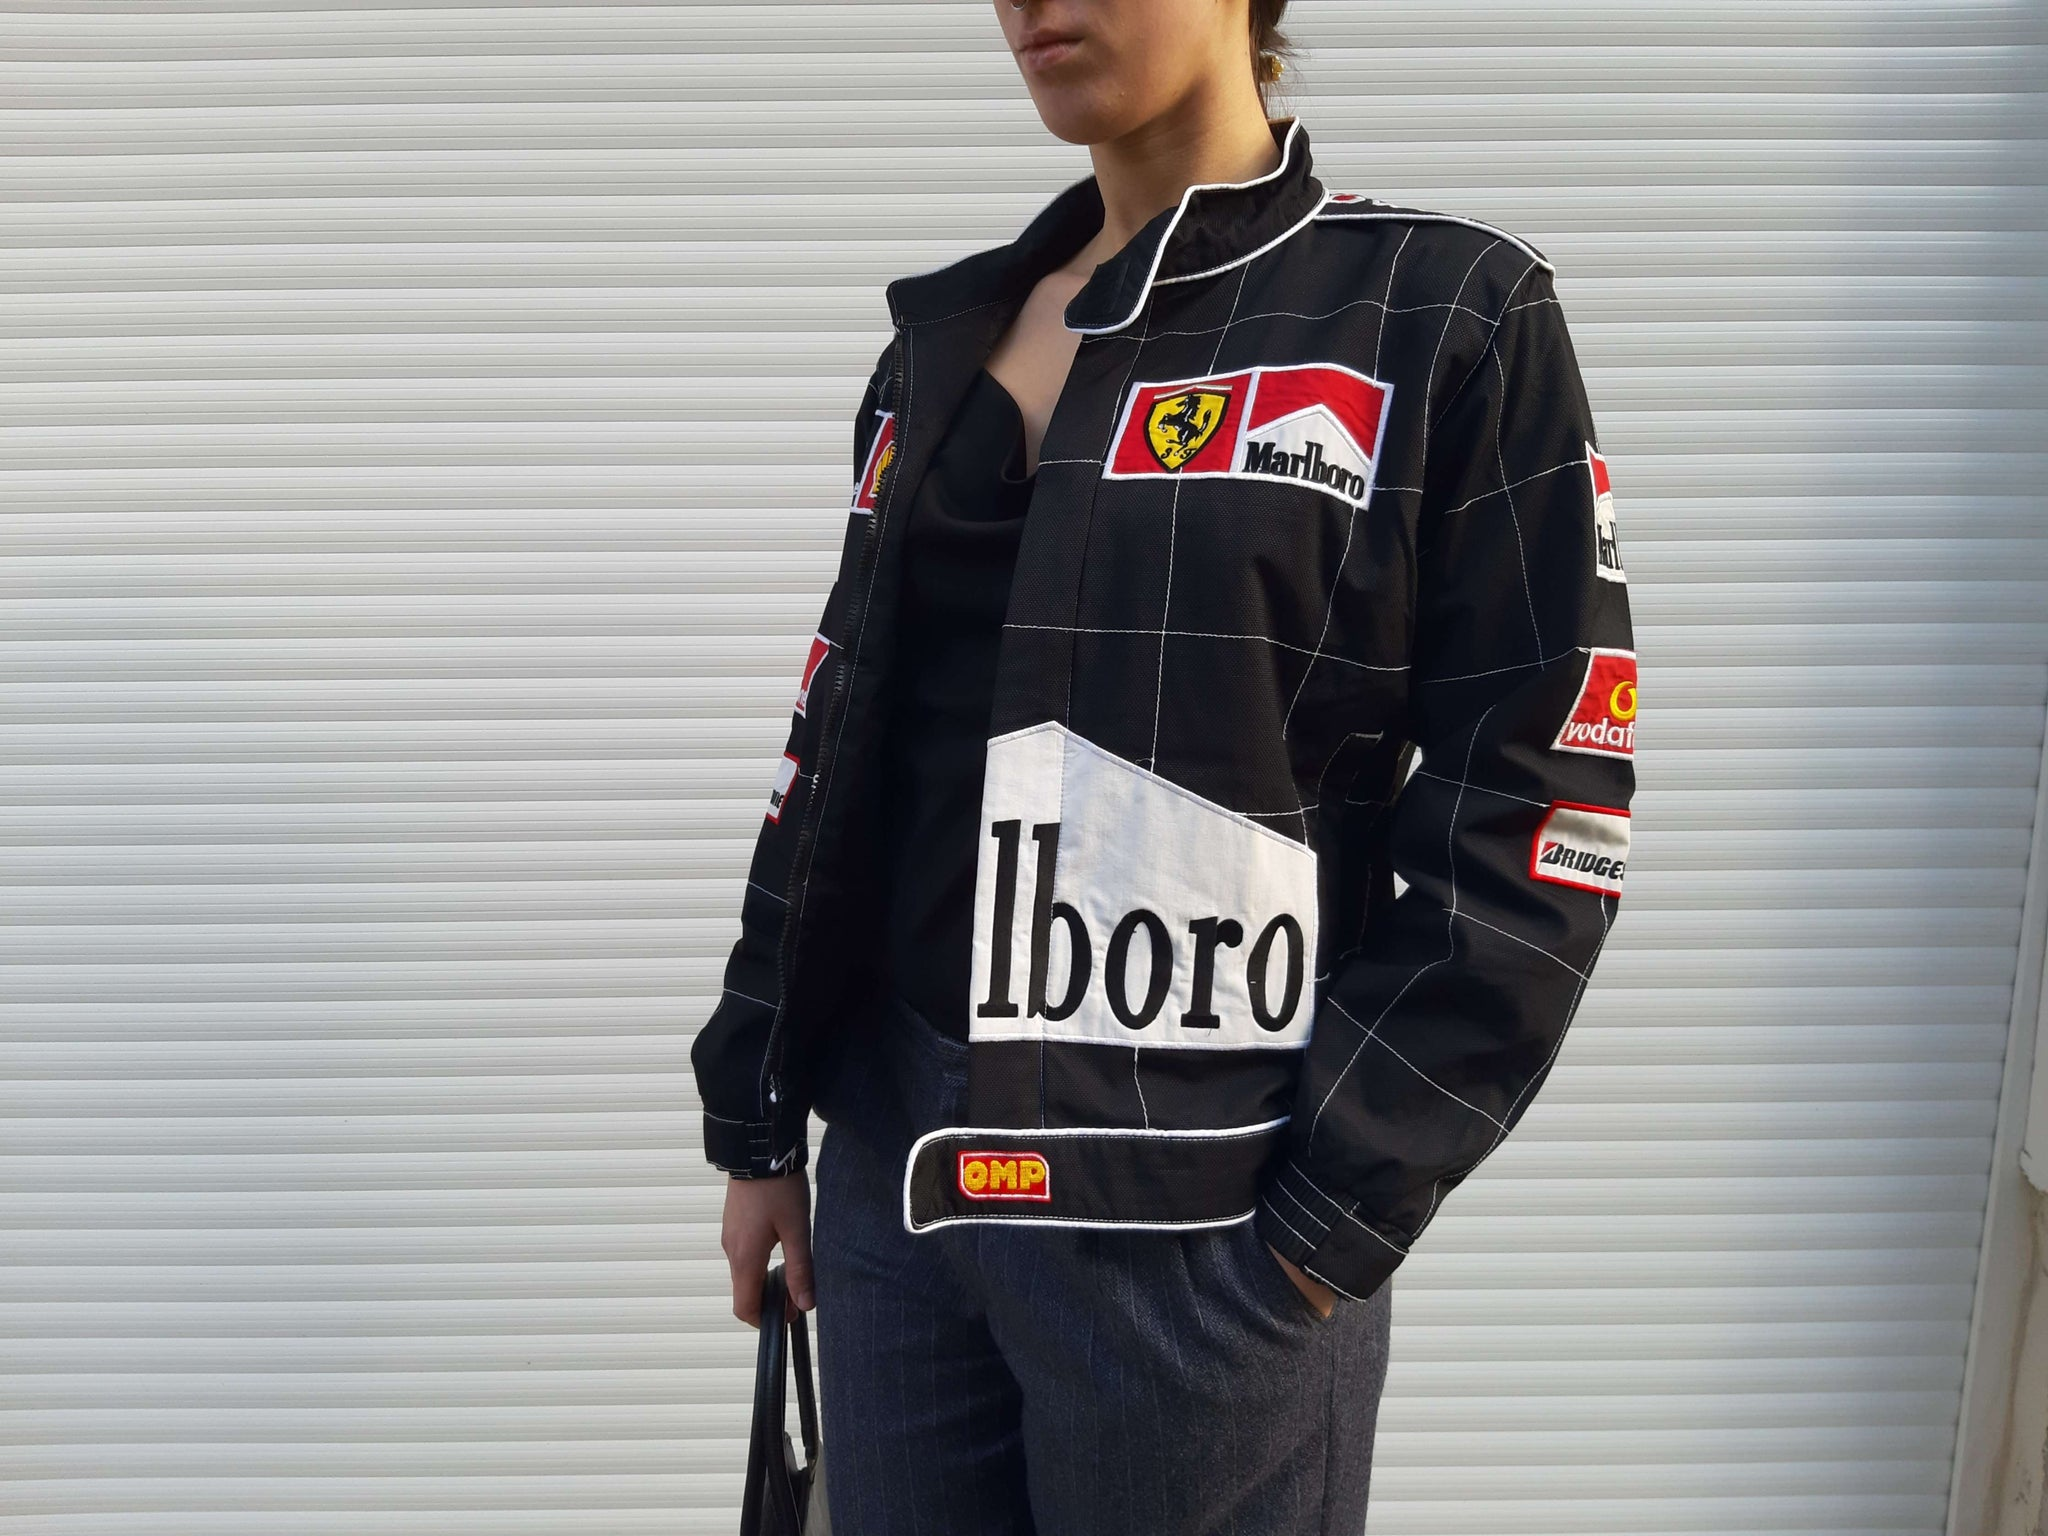 00 S Racing F1 Paded Bomber Jacket Ferrari Marlboro S M Past Out